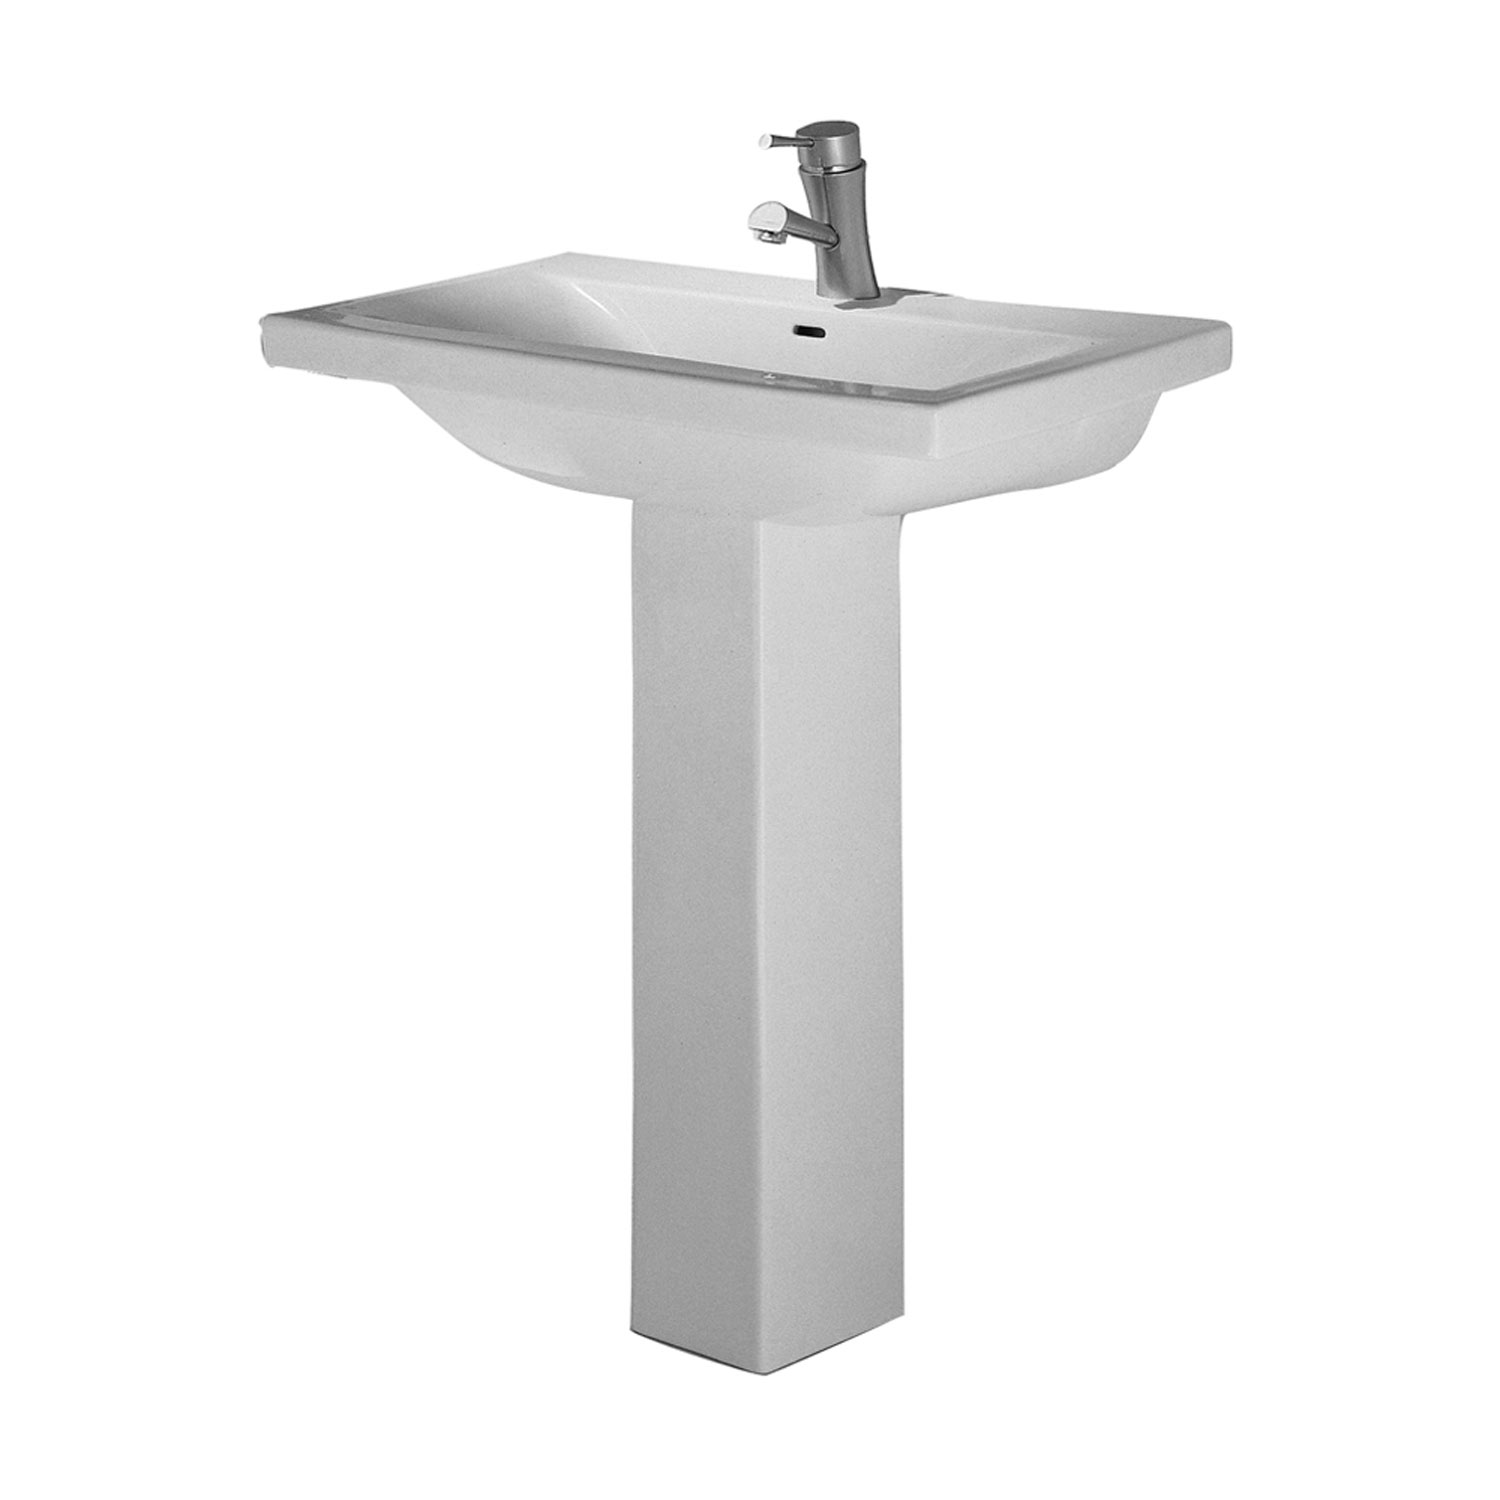 Adorable barclay sinks single bowl double bowl stainless kitchen sink barclay sinks for kitchen ideas